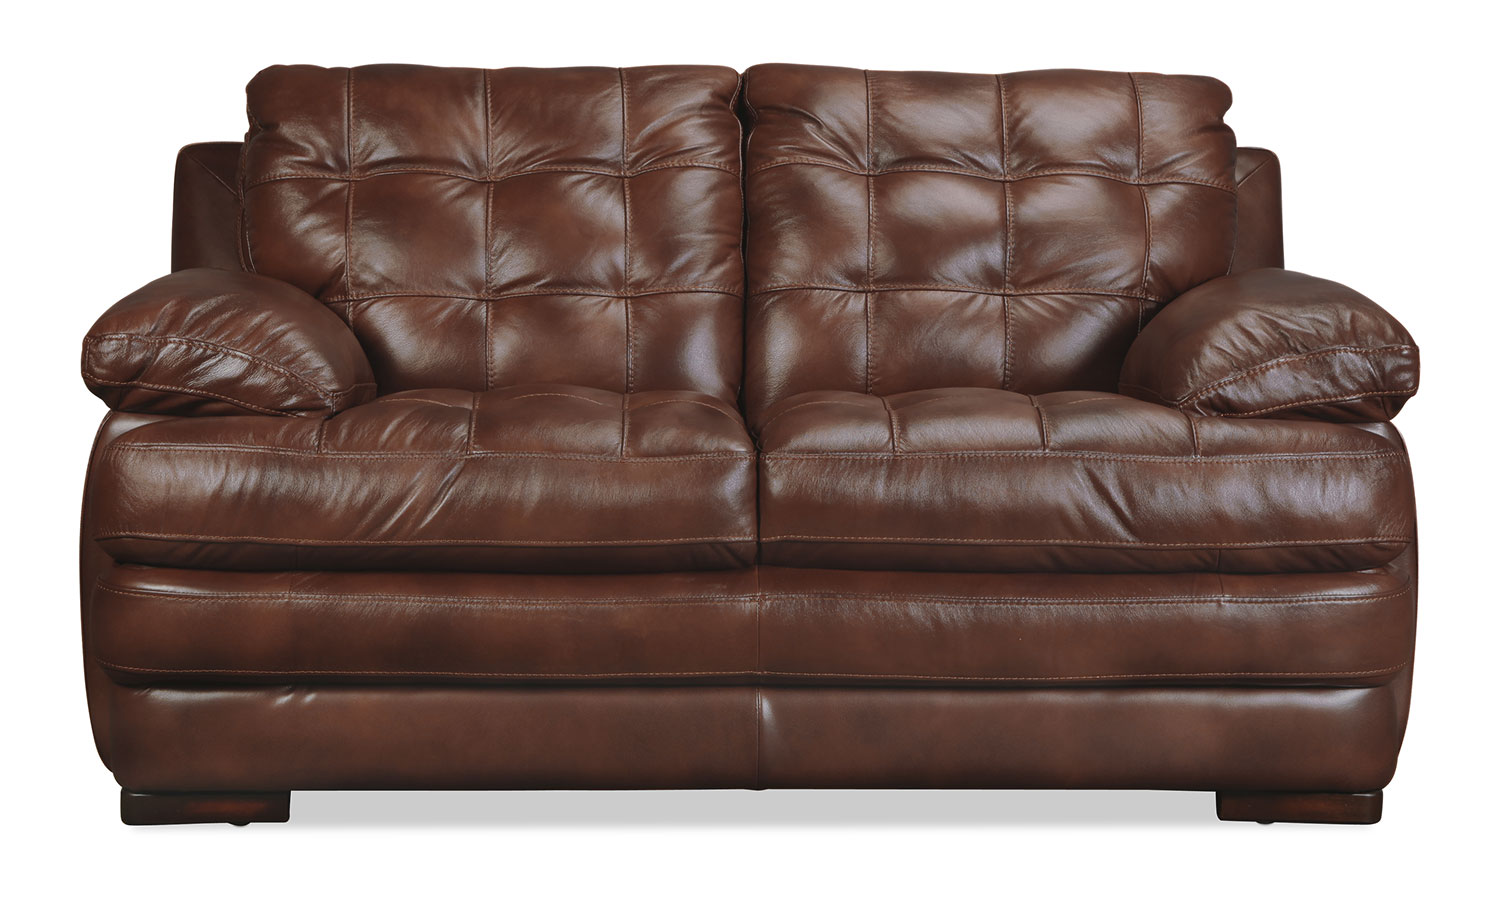 Ashton Loveseat - Brown